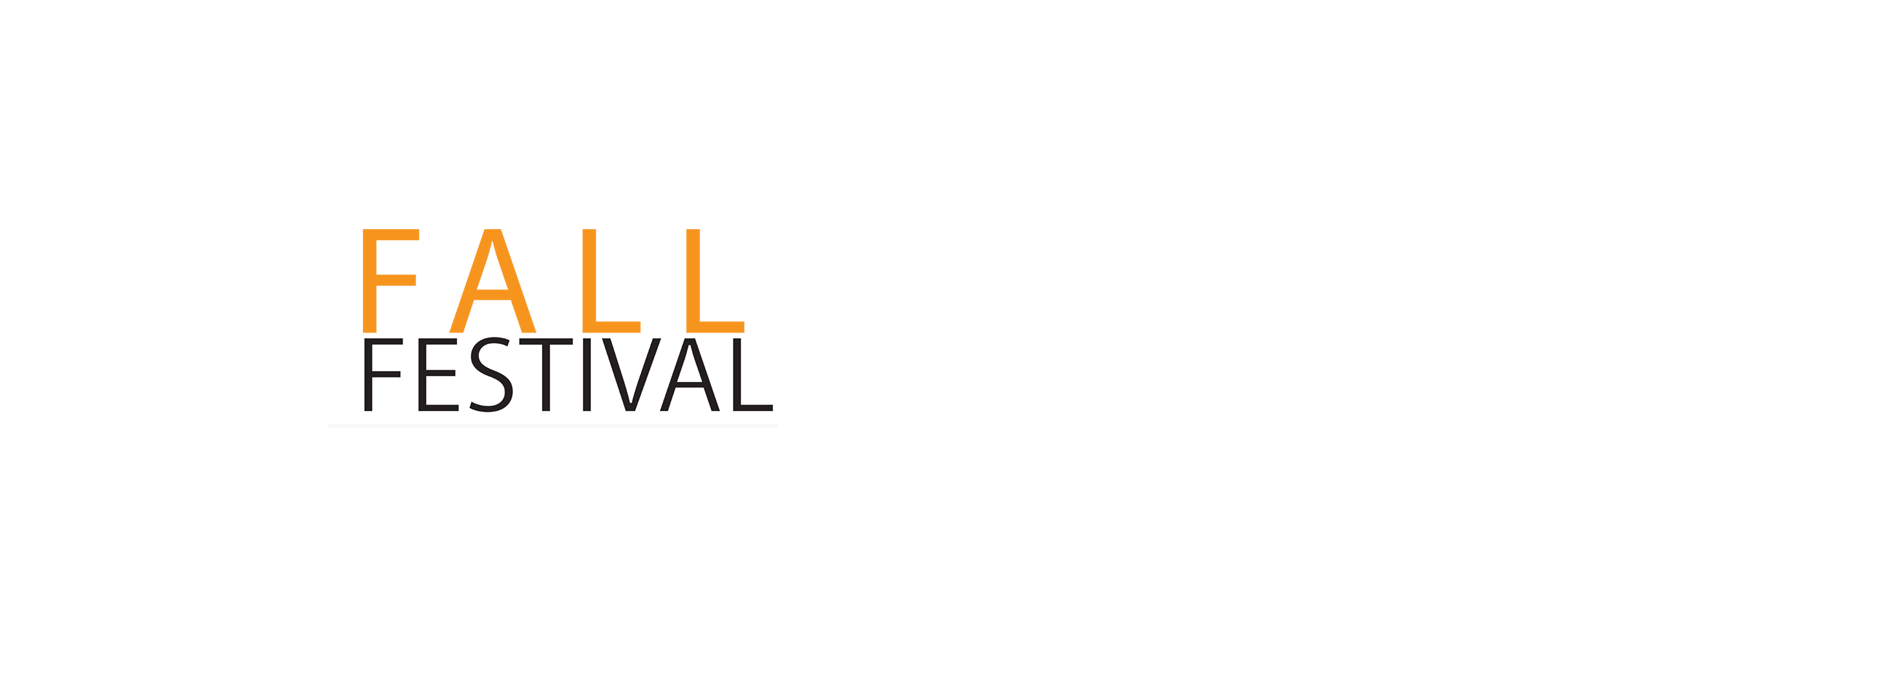 The Village Christian Church in MInooka will be hosting their annual Fall Festival on Sunday, October 21st there will be games, cookie decorating, apple cider, photo booth, Trunk or Treat, petting zoo, pony rides! It's open to everyone and it is FREE!